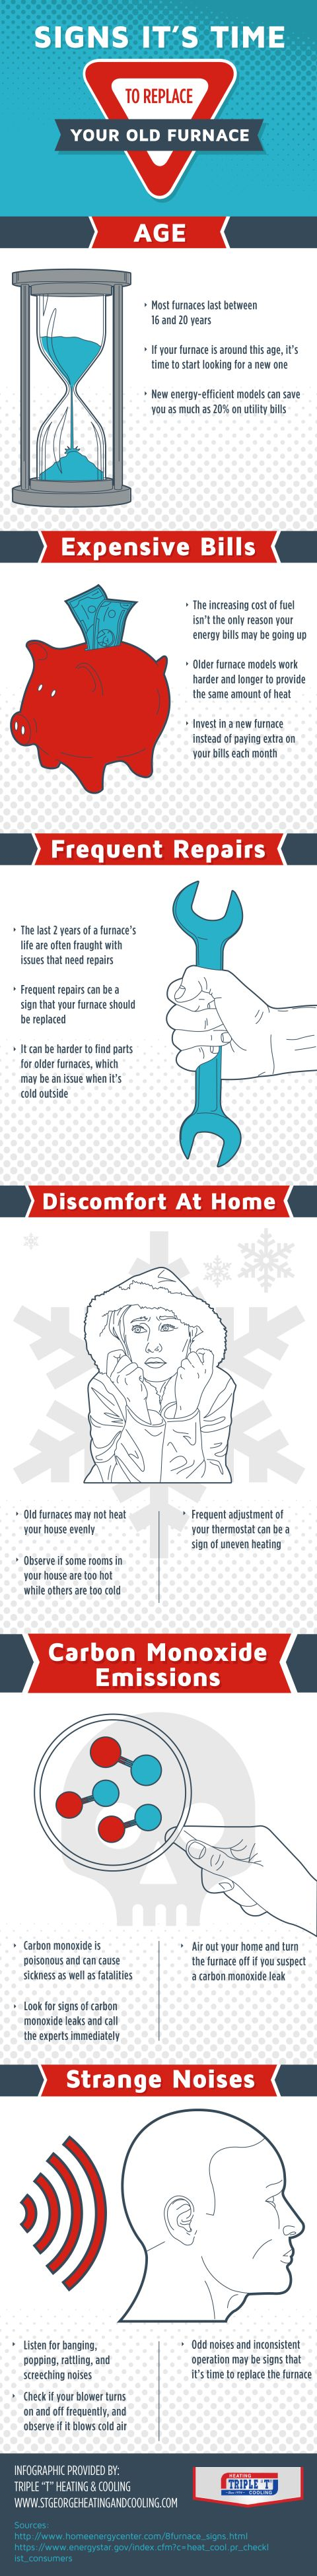 The last 2 years of a furnace's life are often fraught with issues that need repairs. Put your furnace out of its misery and invest in a new 1! Get more tips from this infographic created by a furnace repair specialist in St. George.